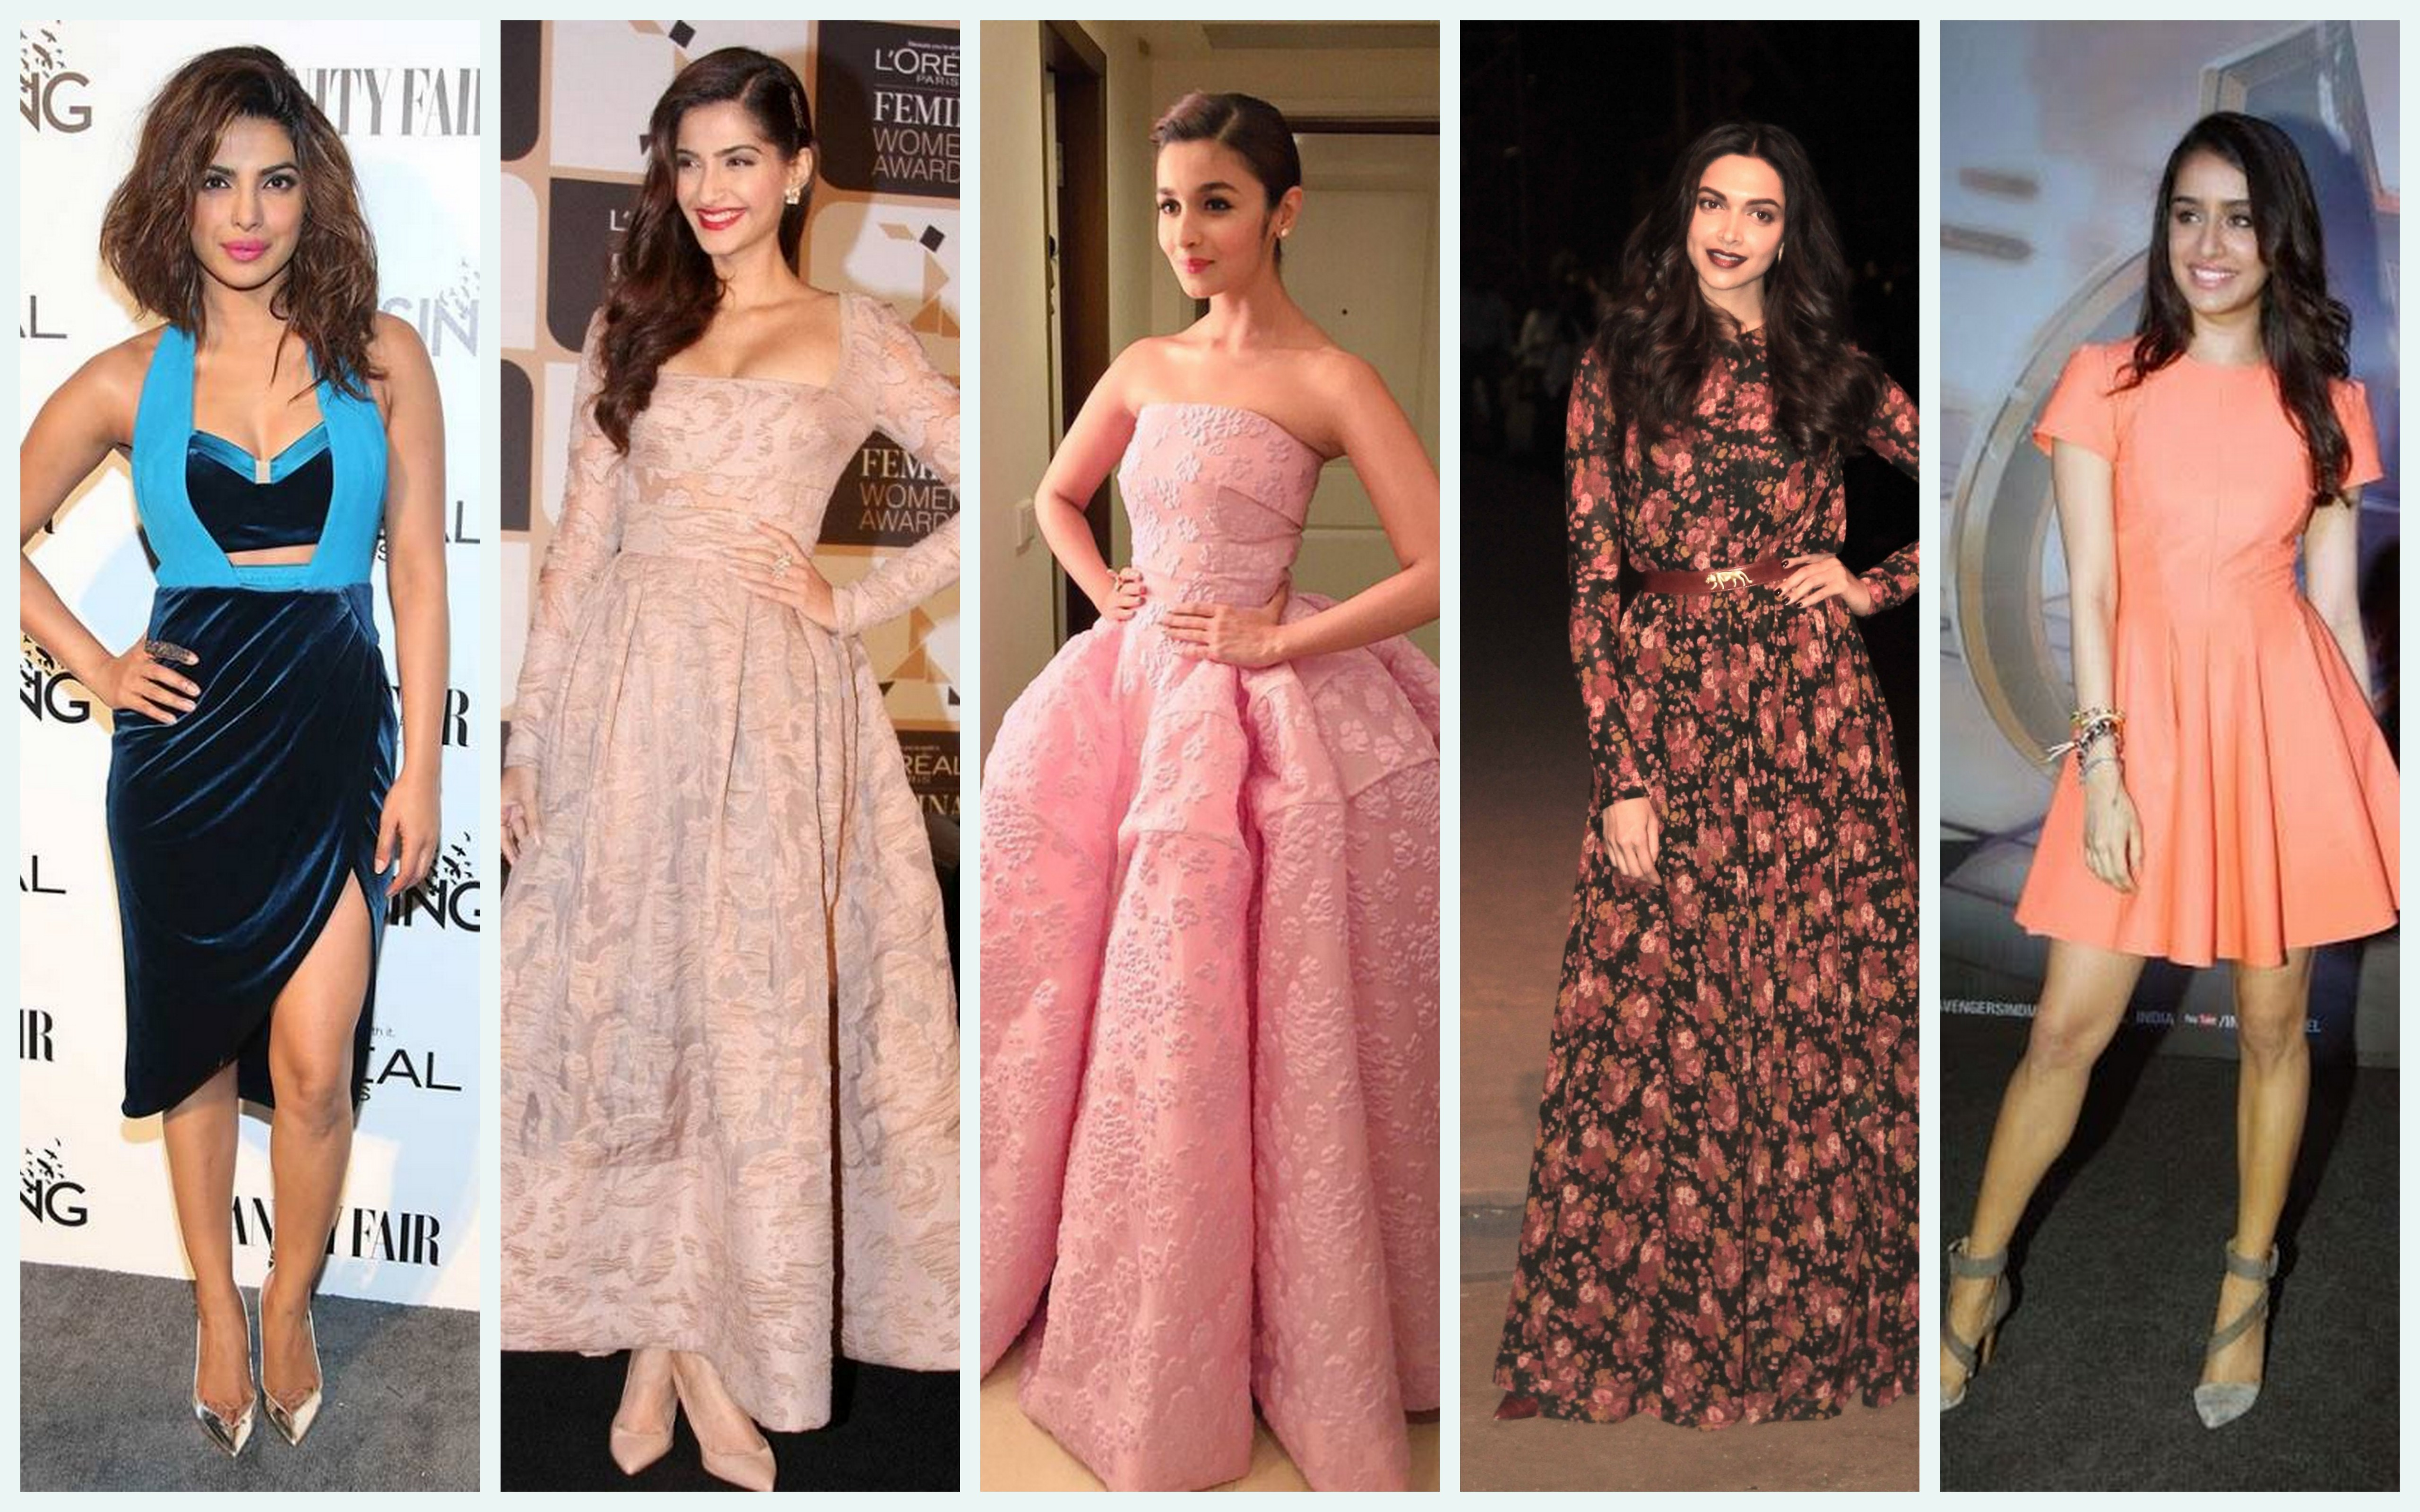 Bollywood 2015: Top 5 Best Dressed Bollywood Celebs of 2015 Female